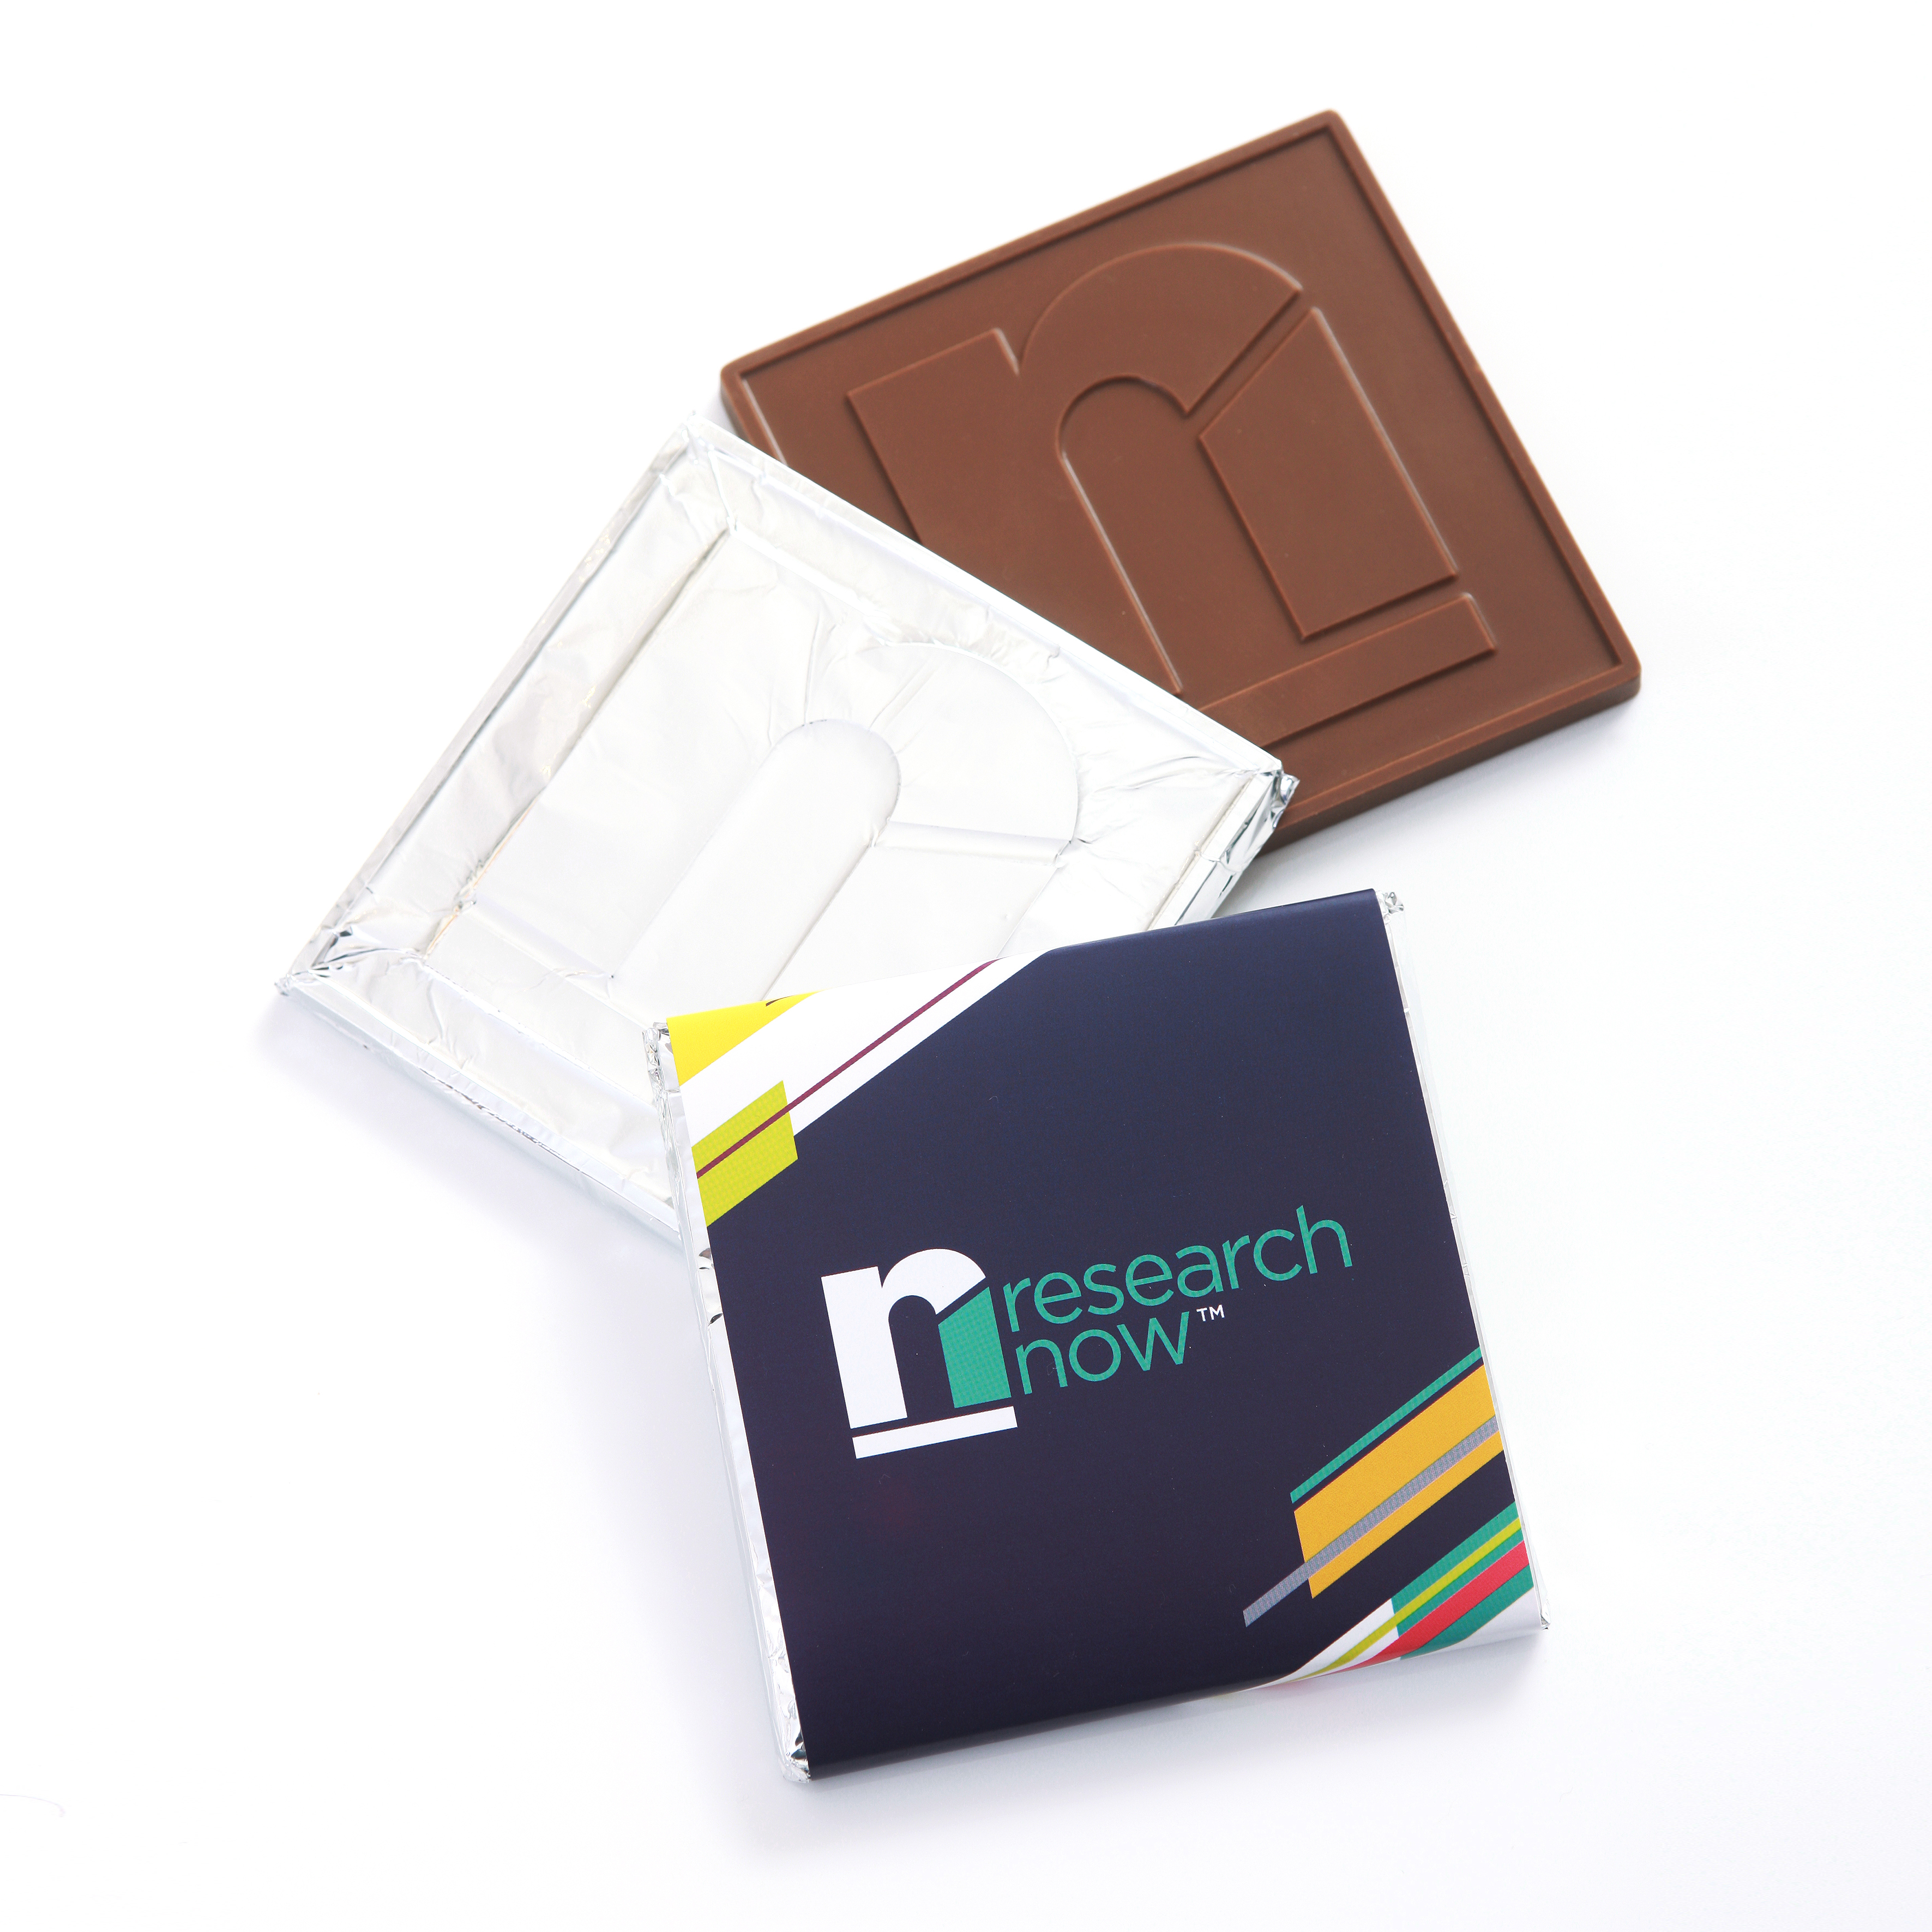 Showcase Your Business Using Branded Chocolate Bars